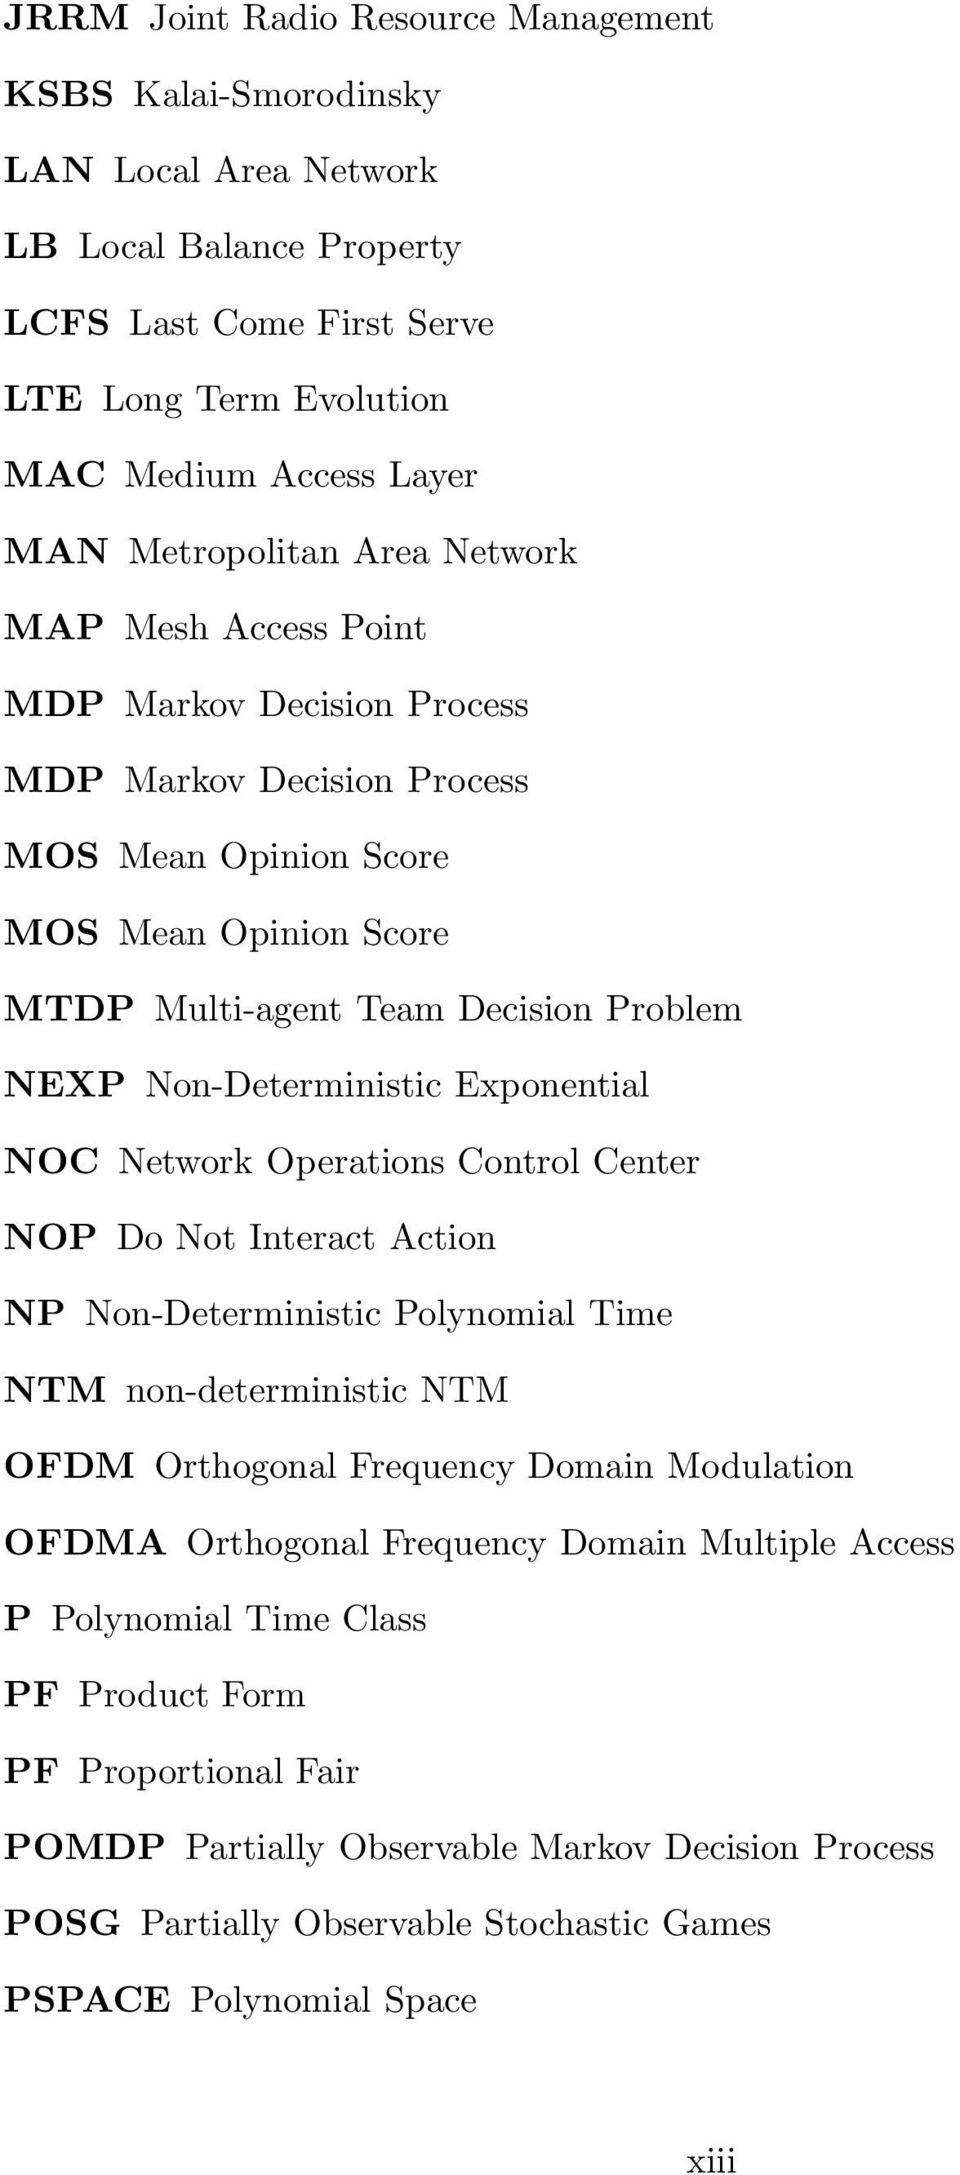 Non-Deterministic Exponential NOC Network Operations Control Center NOP Do Not Interact Action NP Non-Deterministic Polynomial Time NTM non-deterministic NTM OFDM Orthogonal Frequency Domain